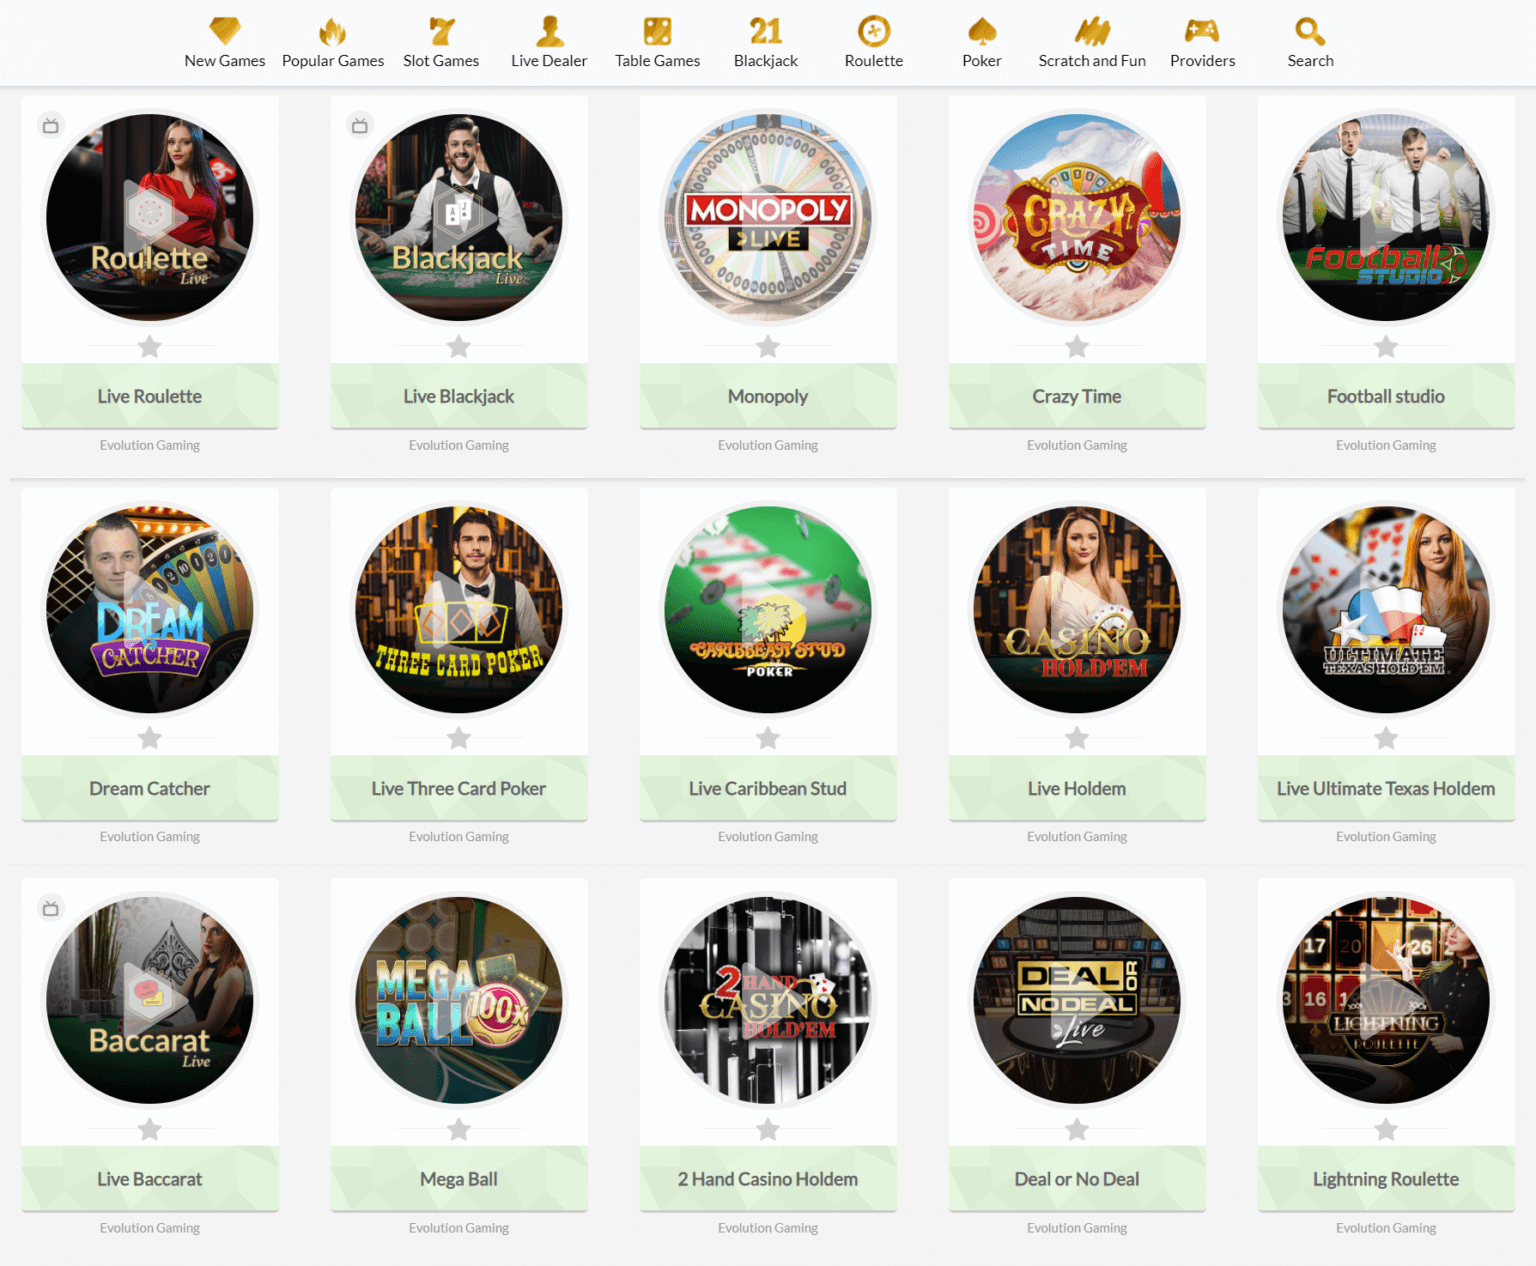 A screenshot of the live casino games you can play at Temple Nile